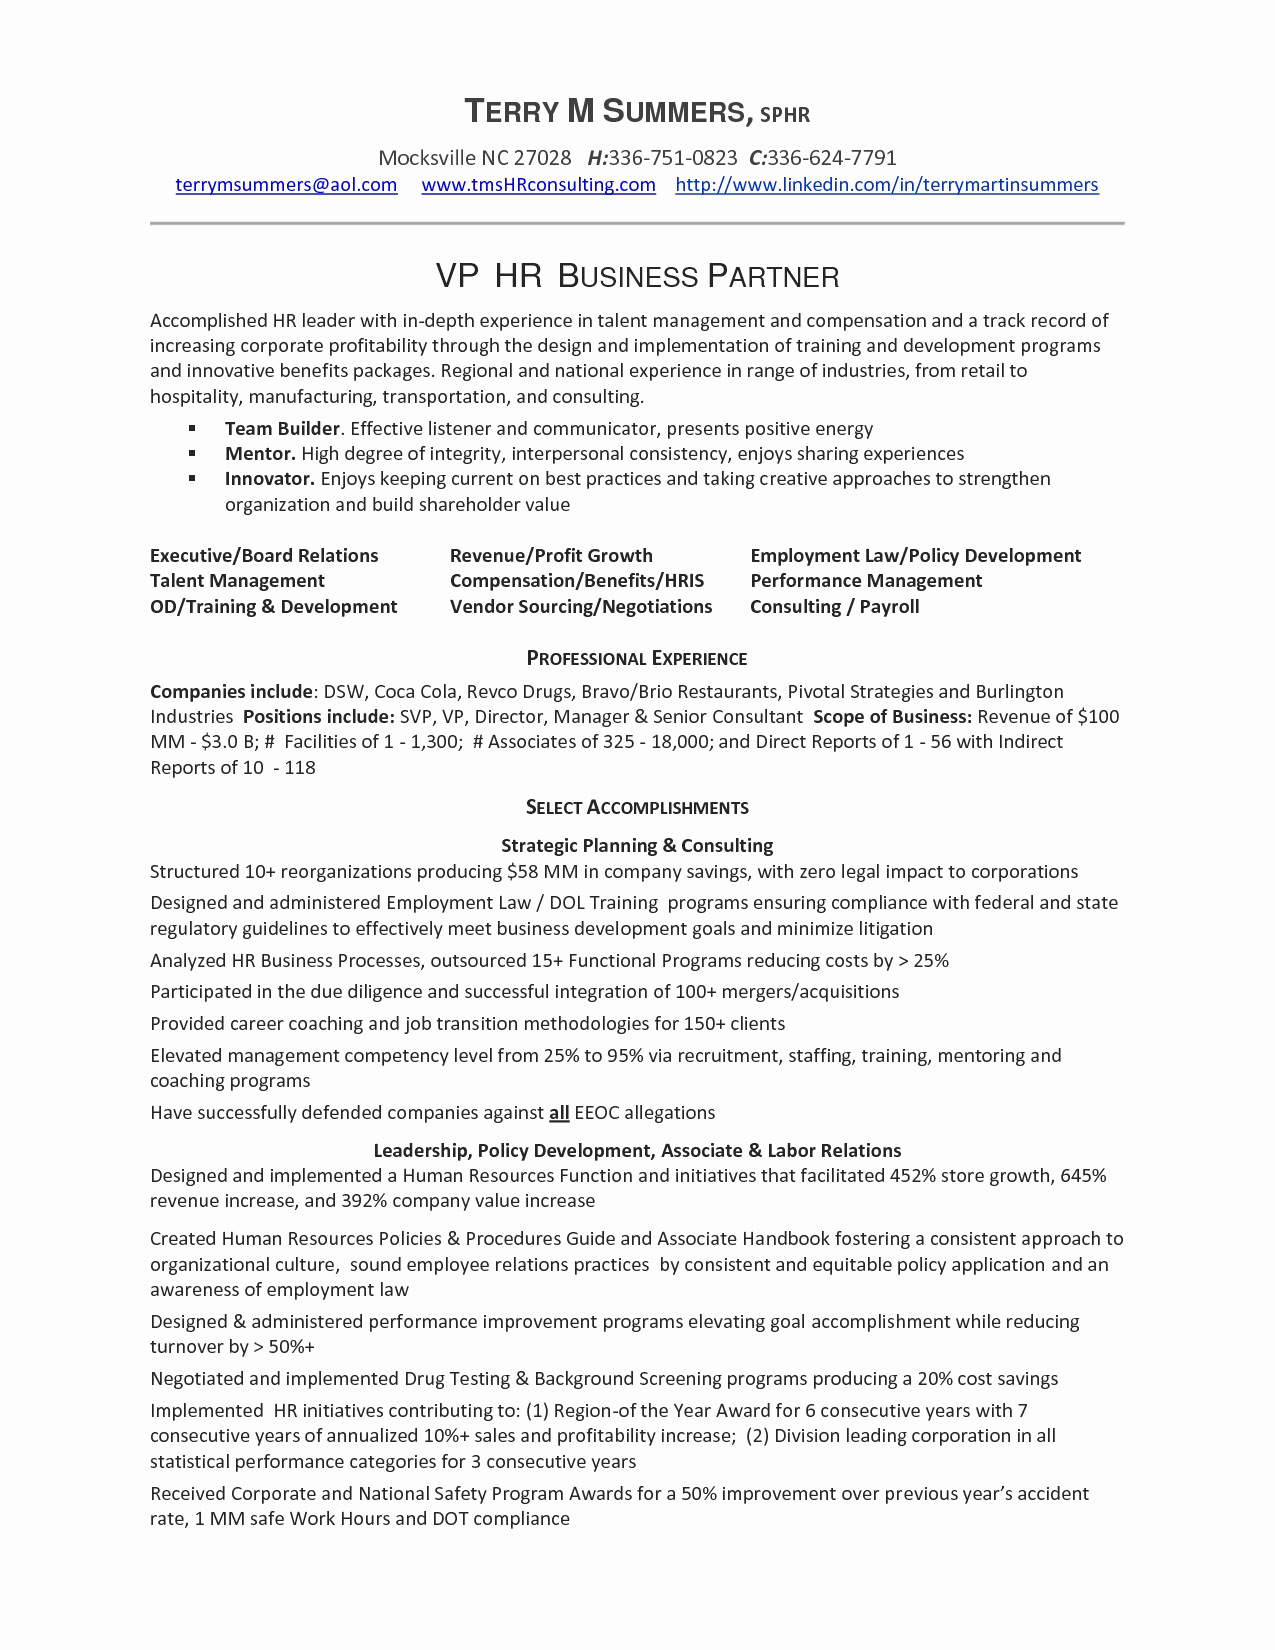 Vendor Letter Template - Resume Templates Doc Fresh Business Analyst Resume Sample Doc